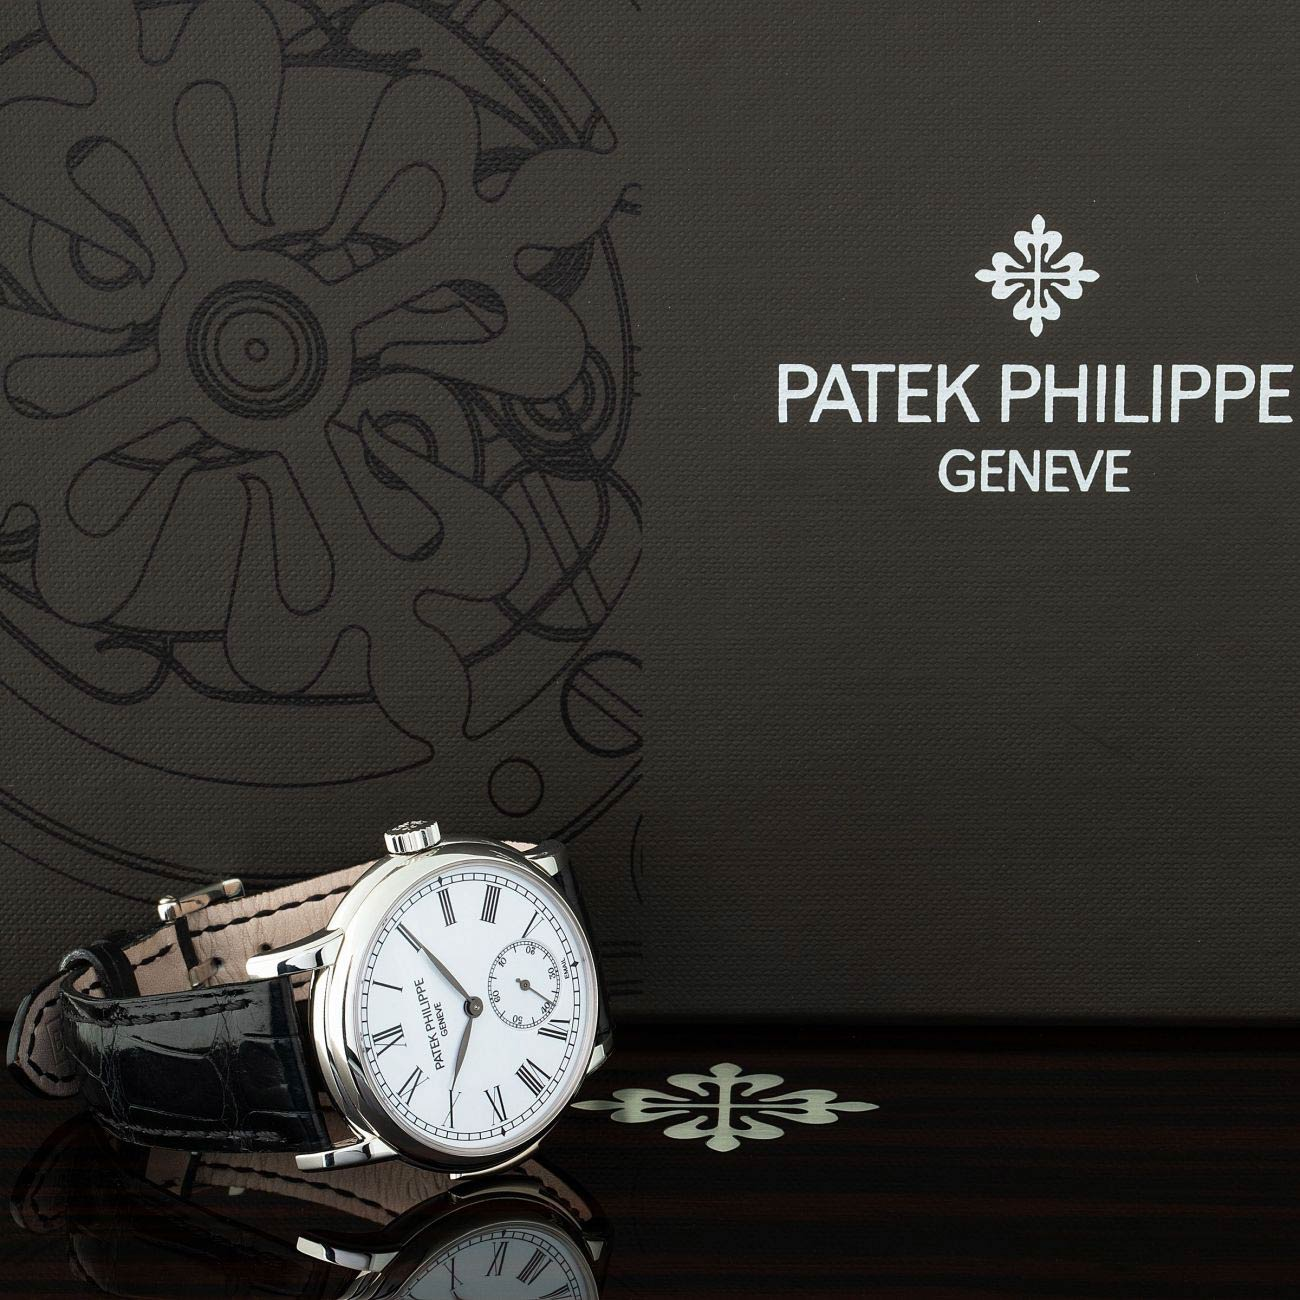 Lot 150 Patek Philippe: Gorgeous and Very Rare Minute Repeater Wristwatch in Platinum, Reference 5078p, with Enamel Dial, Box, Certificate of Origin, Engine for Time-Machine and Book